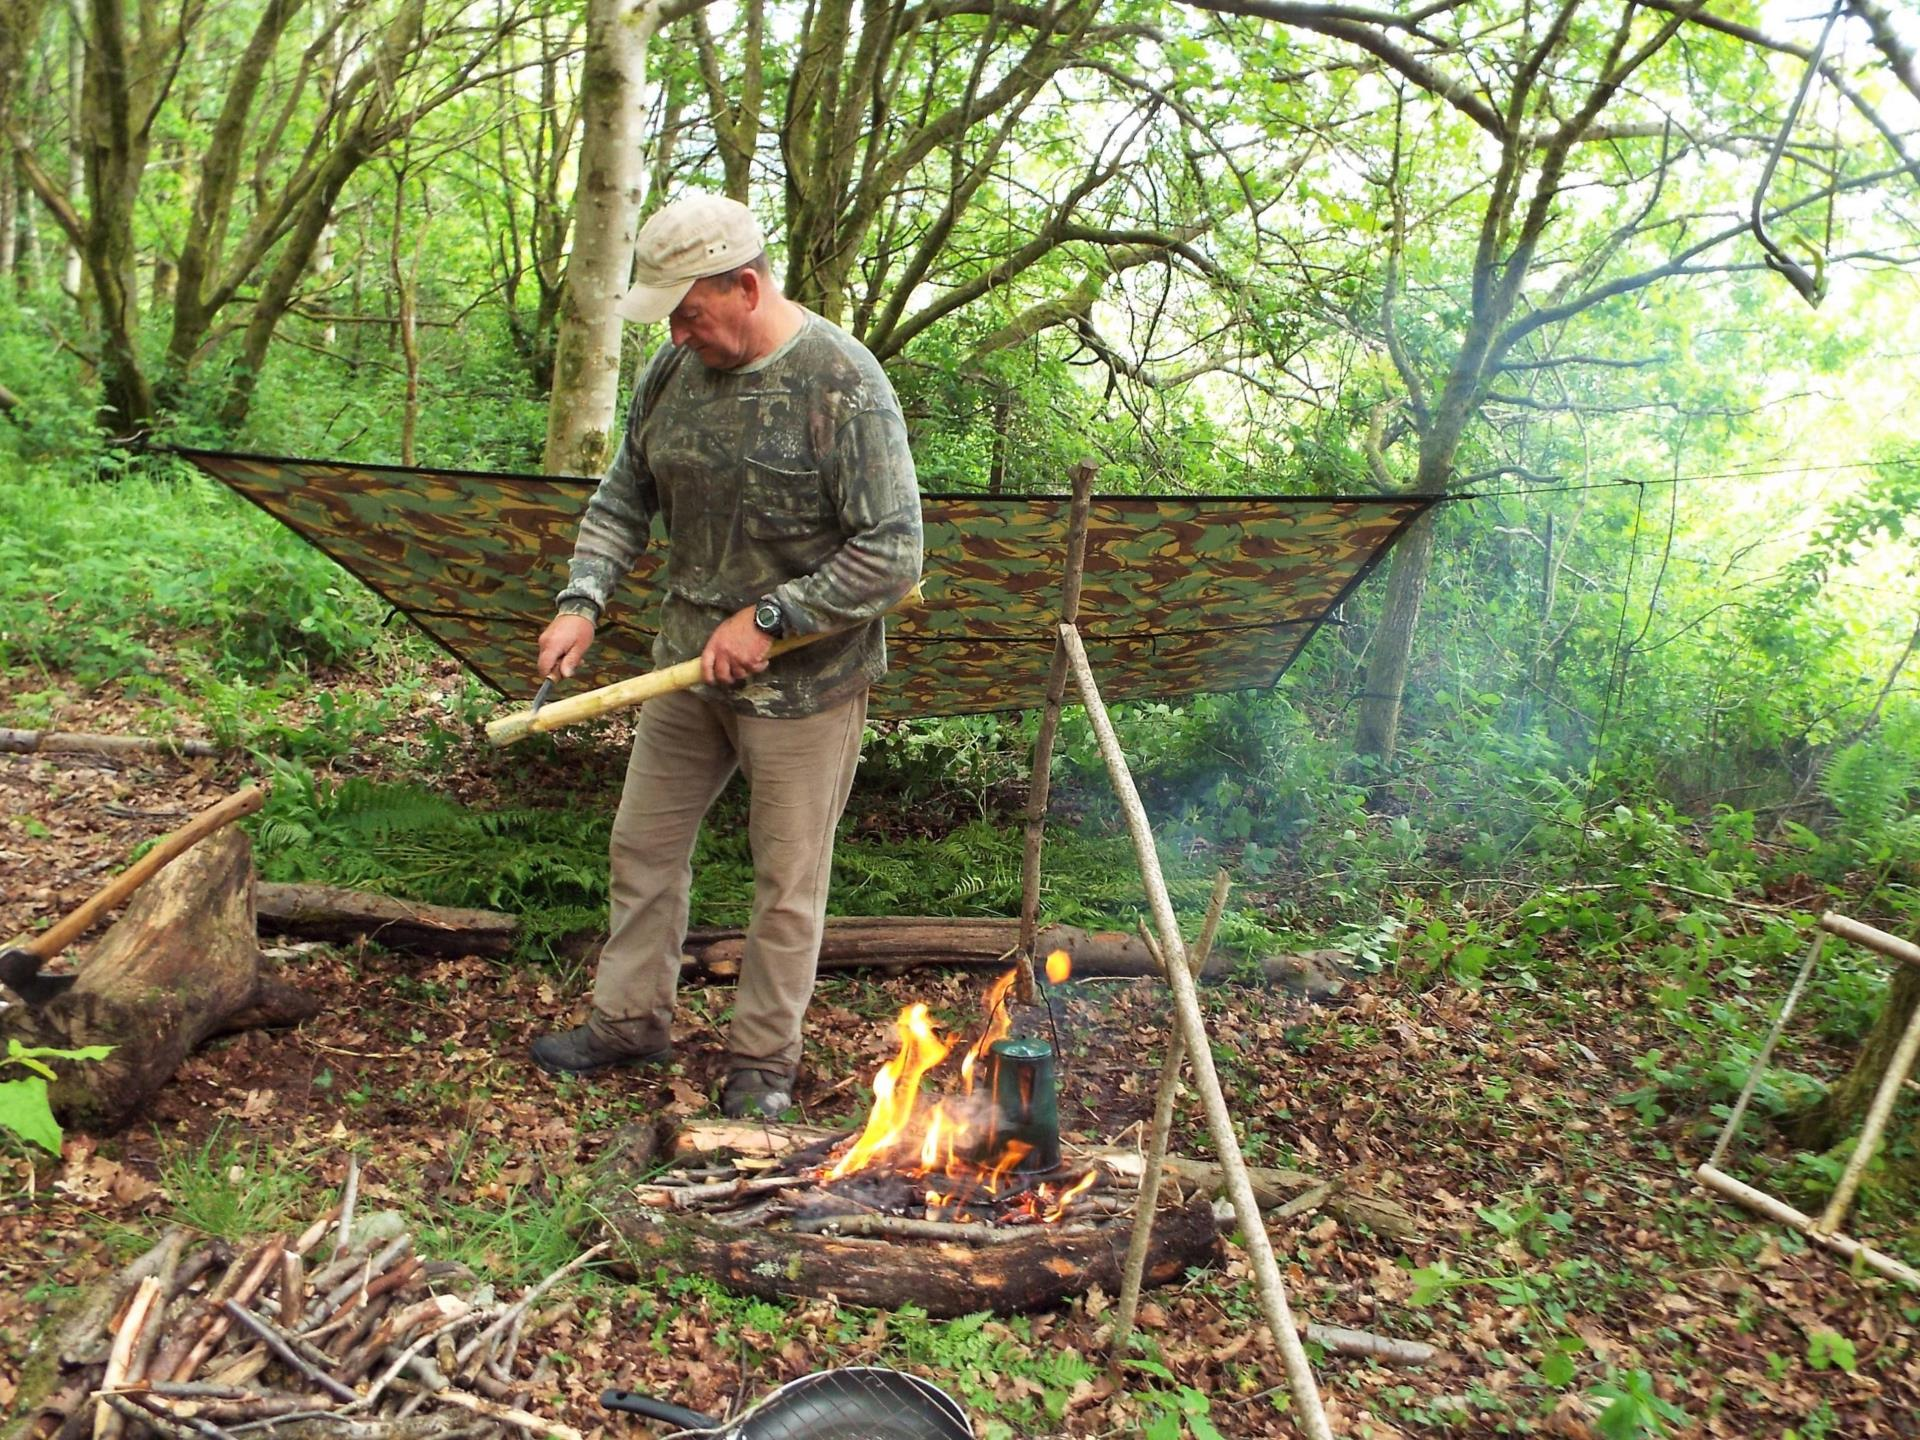 Setting up a Bushcraft Camp